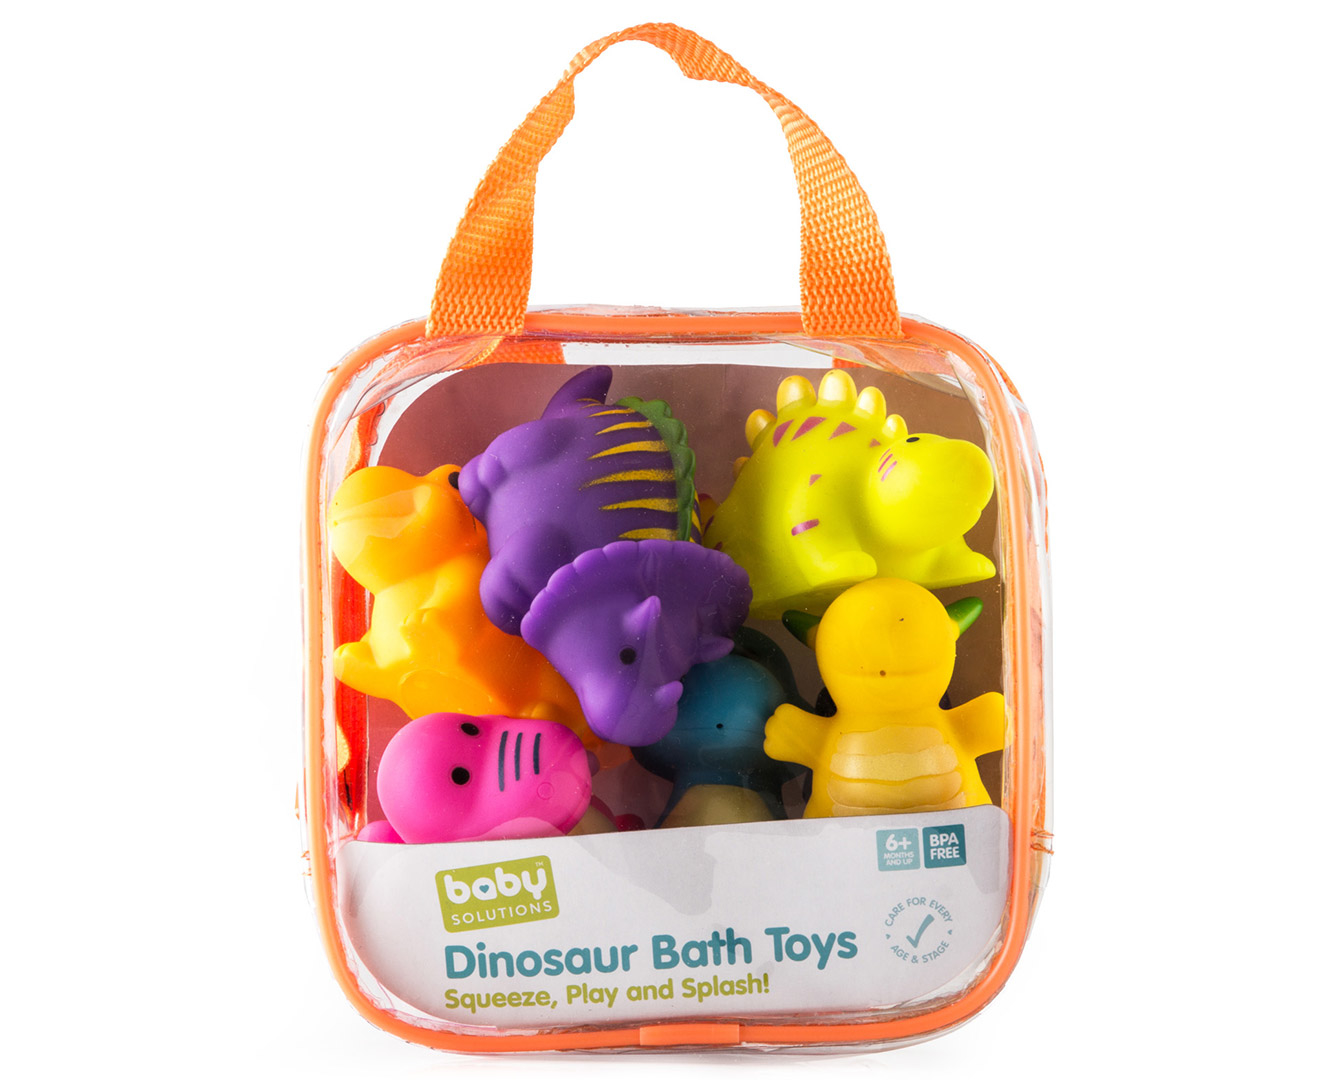 Baby Solutions 6-Piece Dinosaur Bath Toy Set | eBay